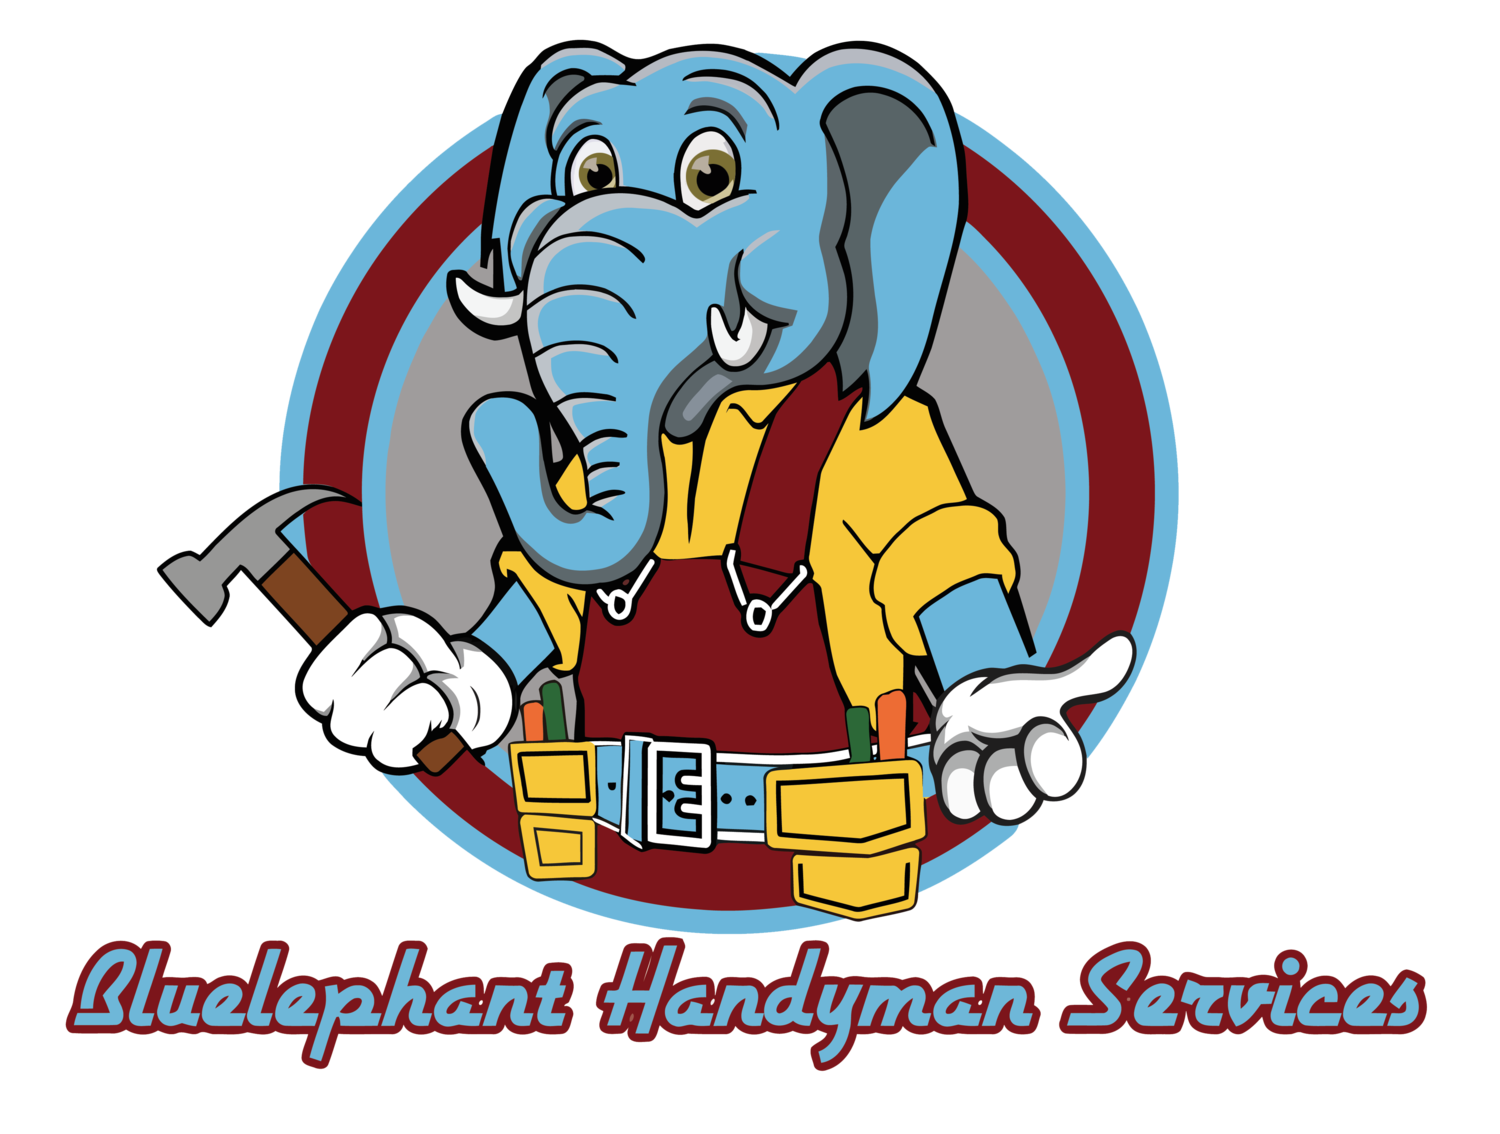 Honest clipart horizontal communication. Bluelephant construction ltd